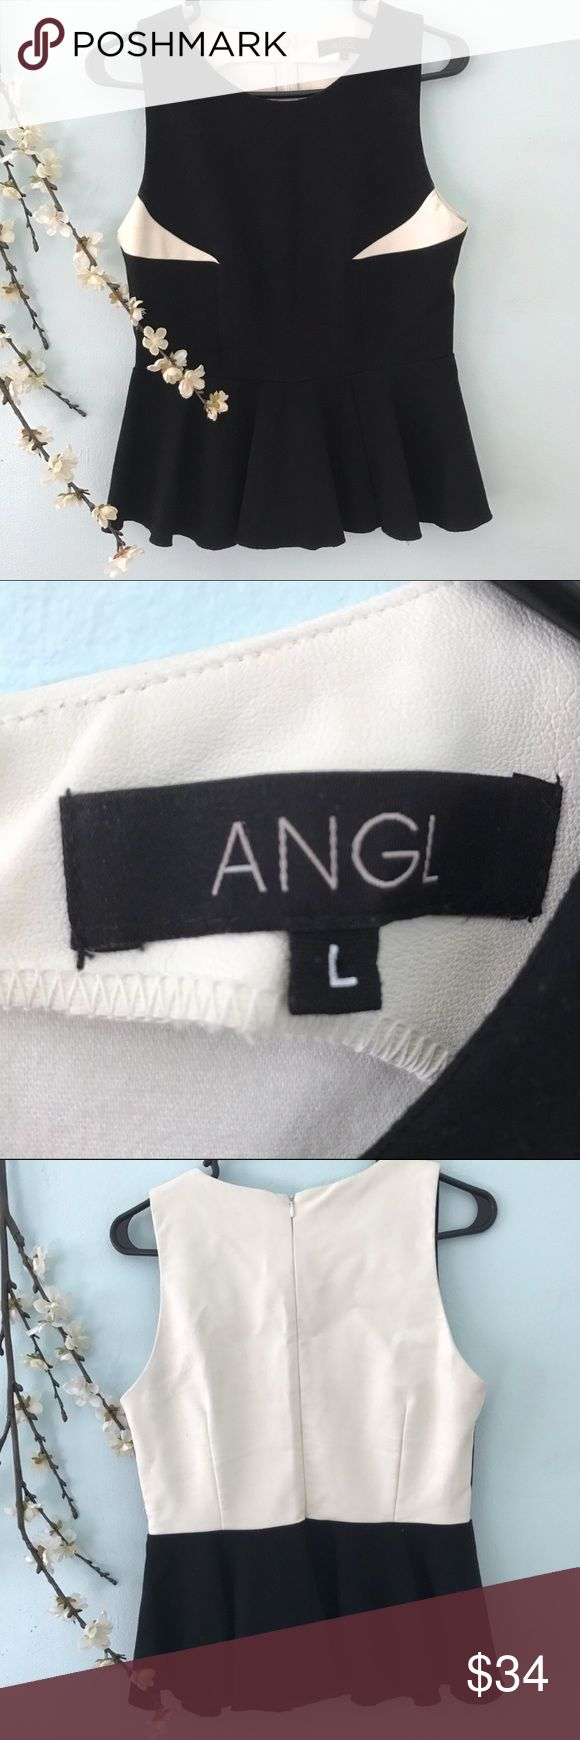 ANGL peplum L black and cream leather top Blouse ANGL peplum L black and cream leather top Blouse / feel free to ask questions ANGL Tops Blouses